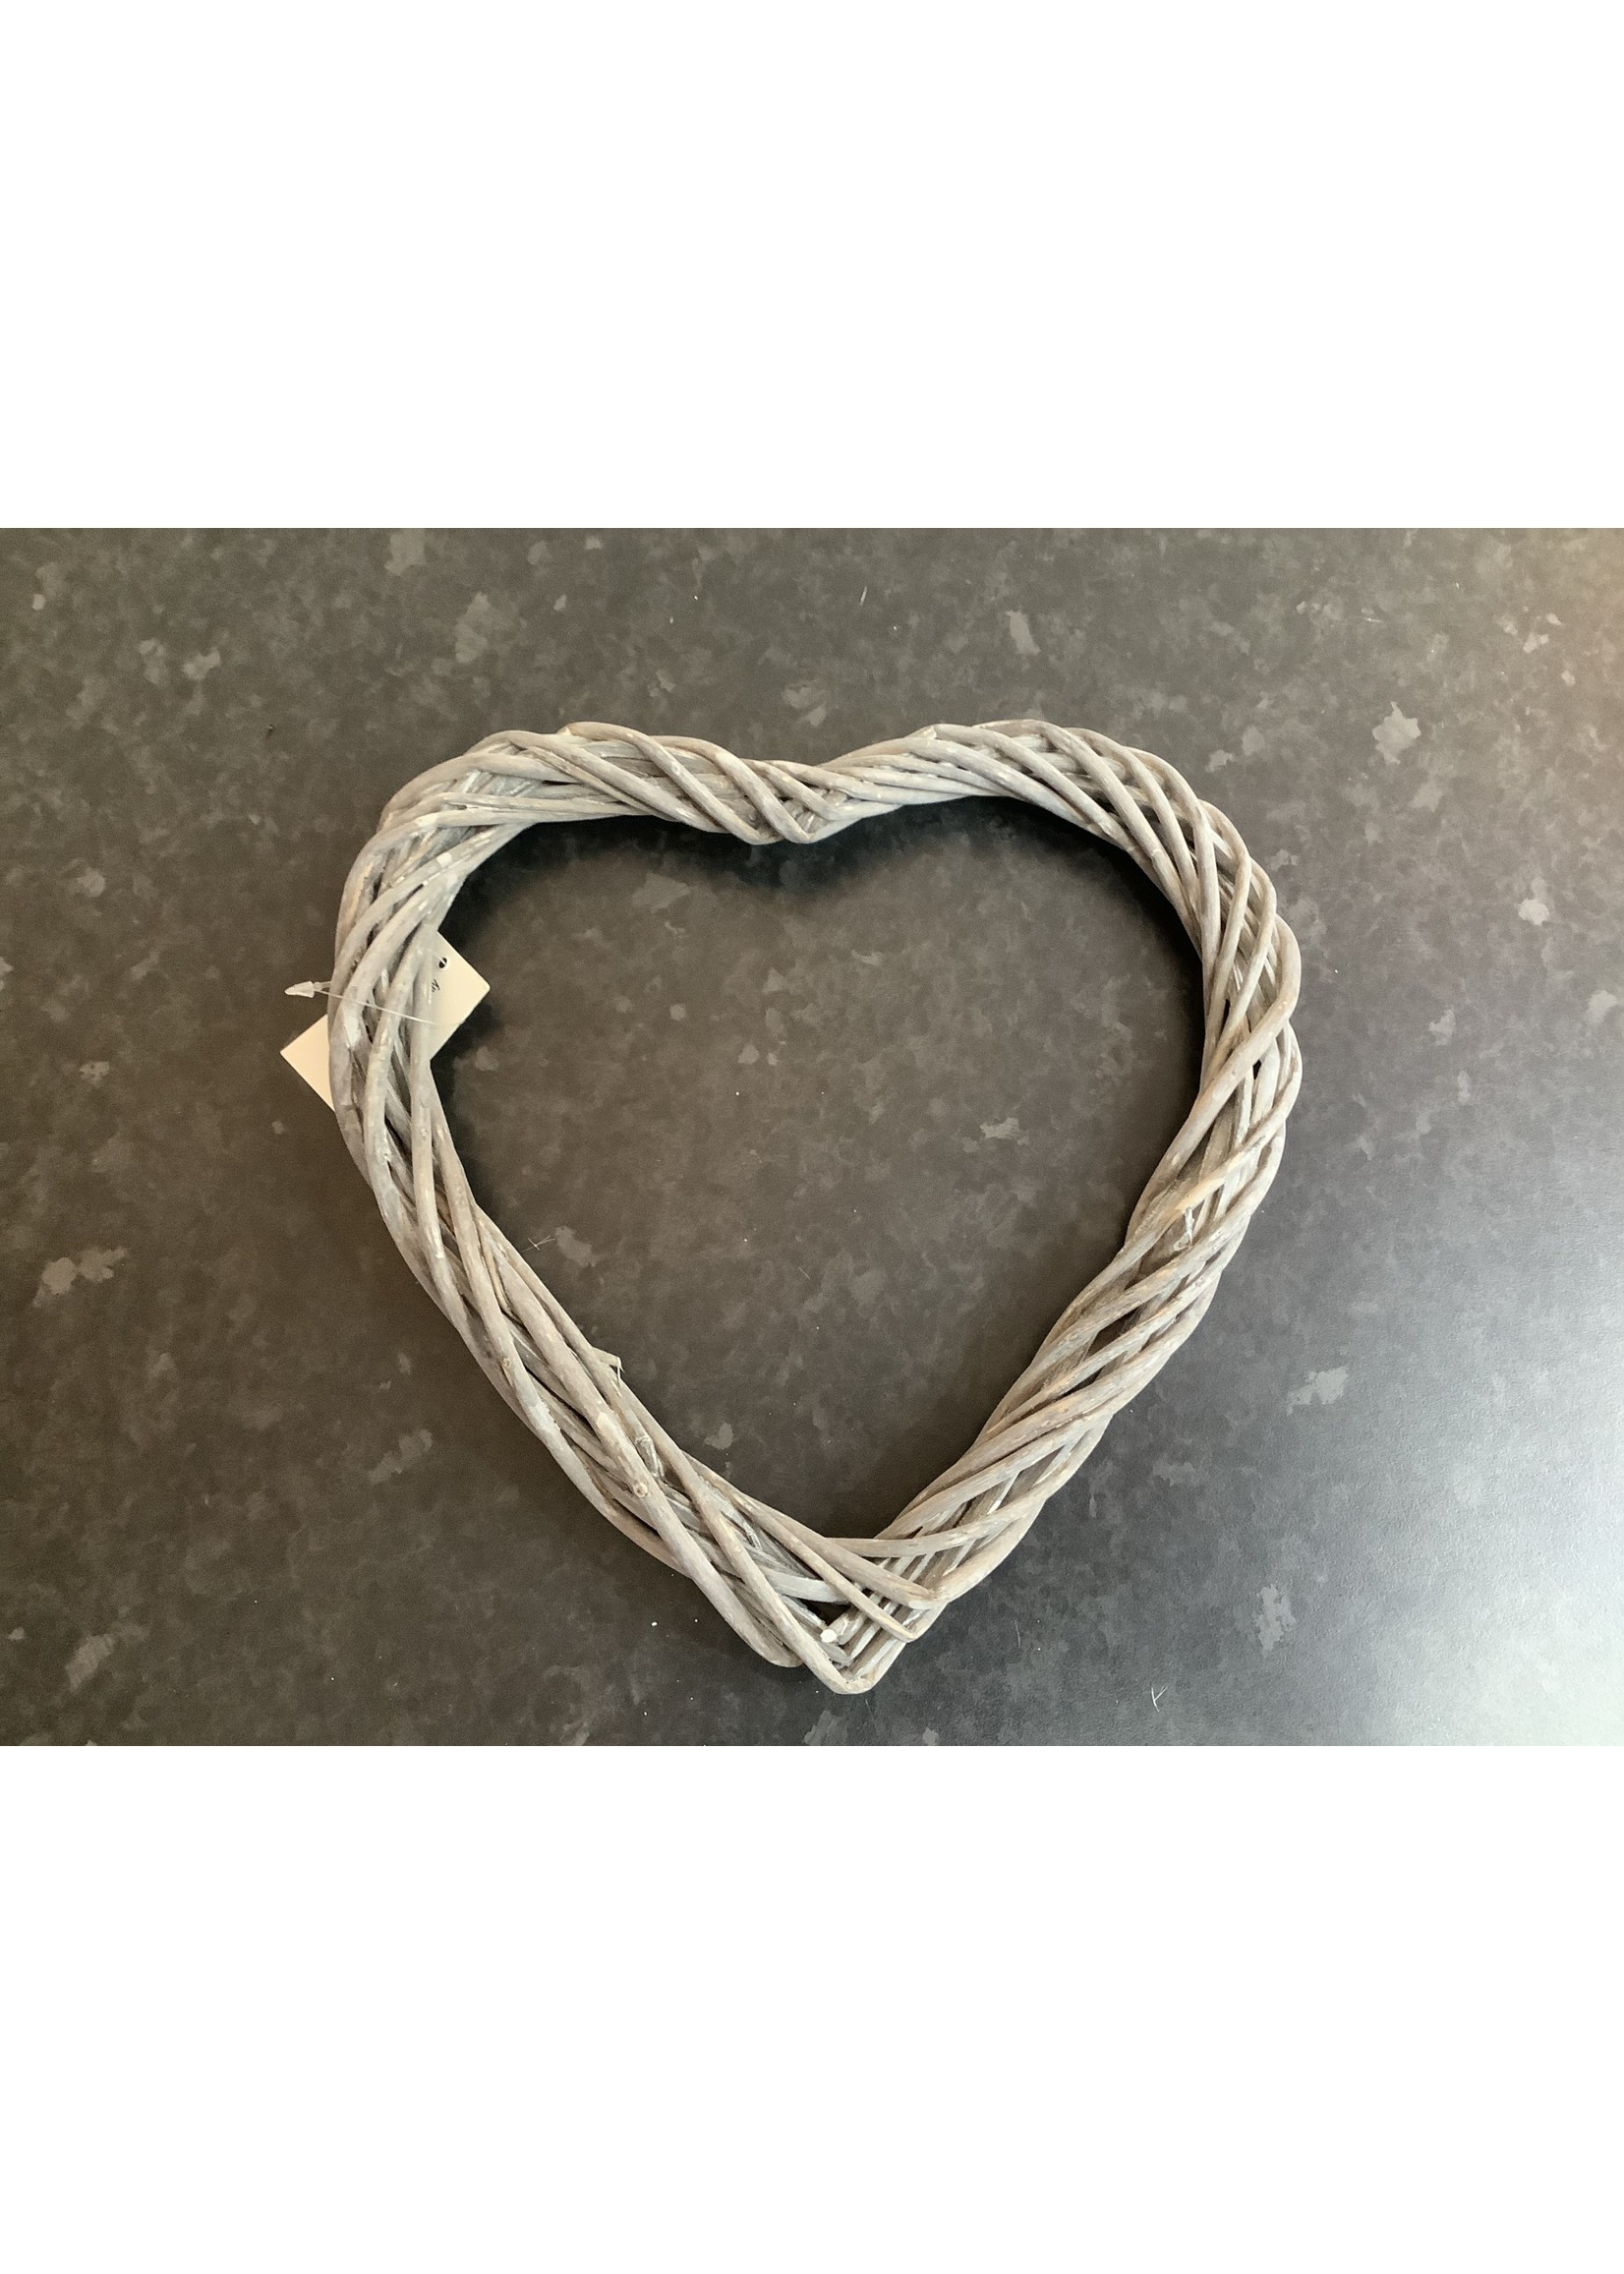 Small wooden heart 25cm